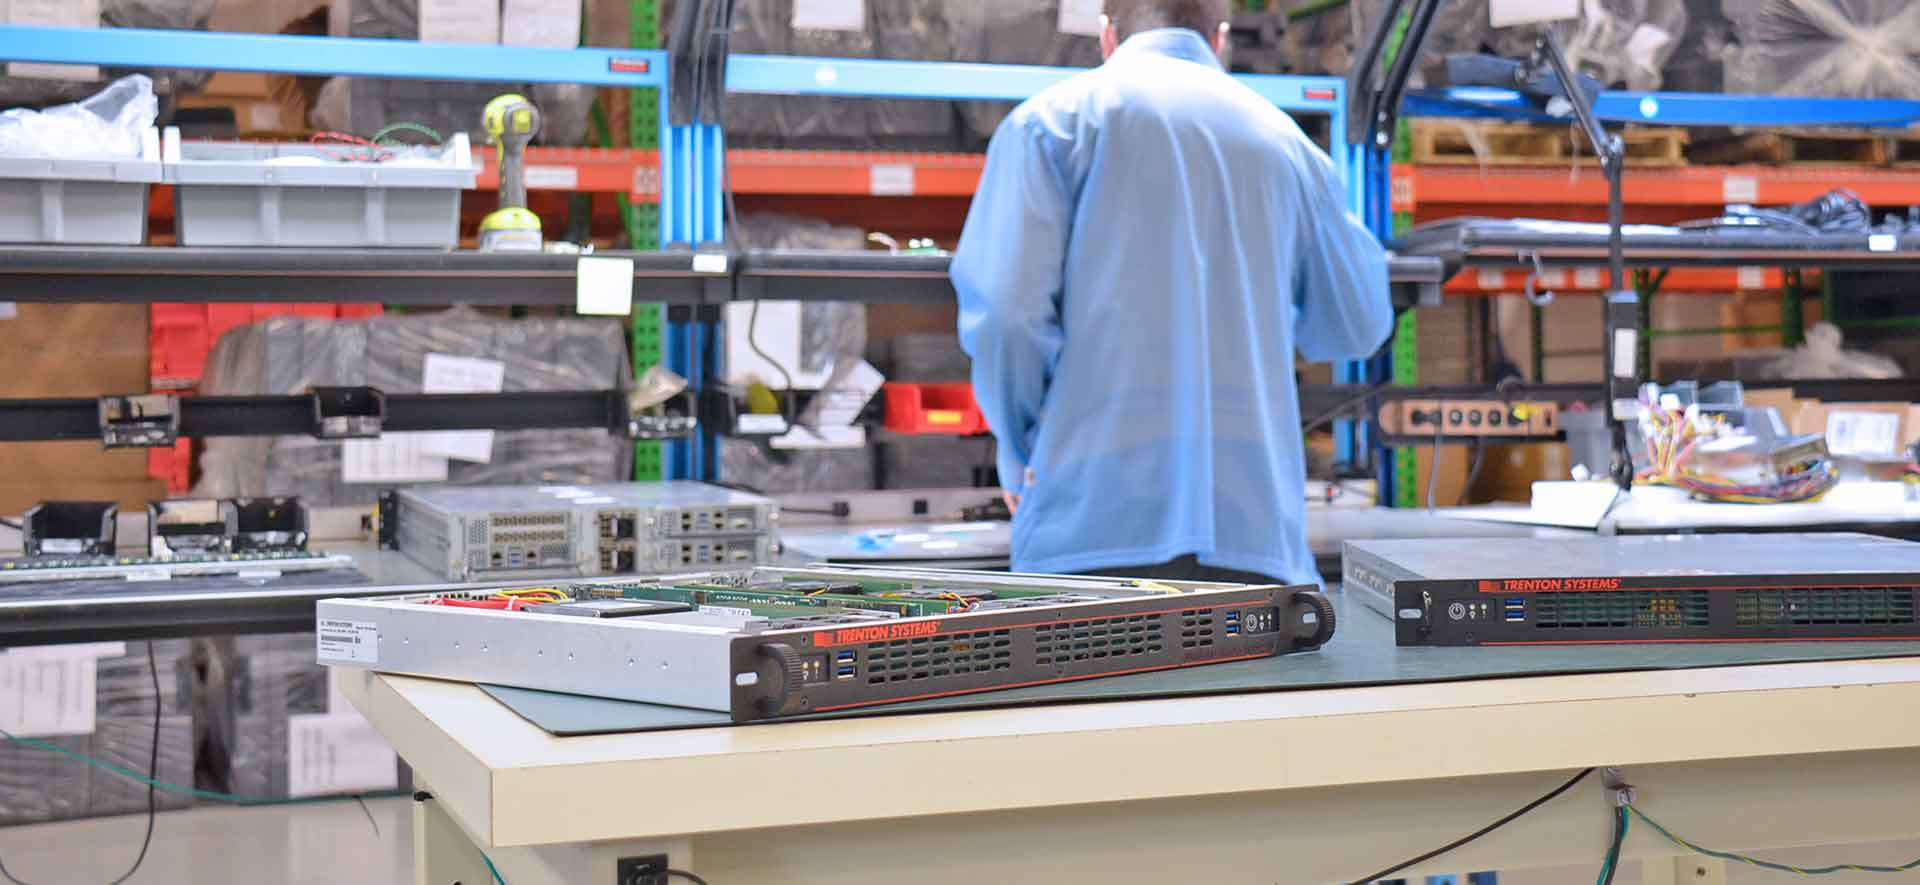 A photo of 1U rugged workstations manufactured by Trenton Systems